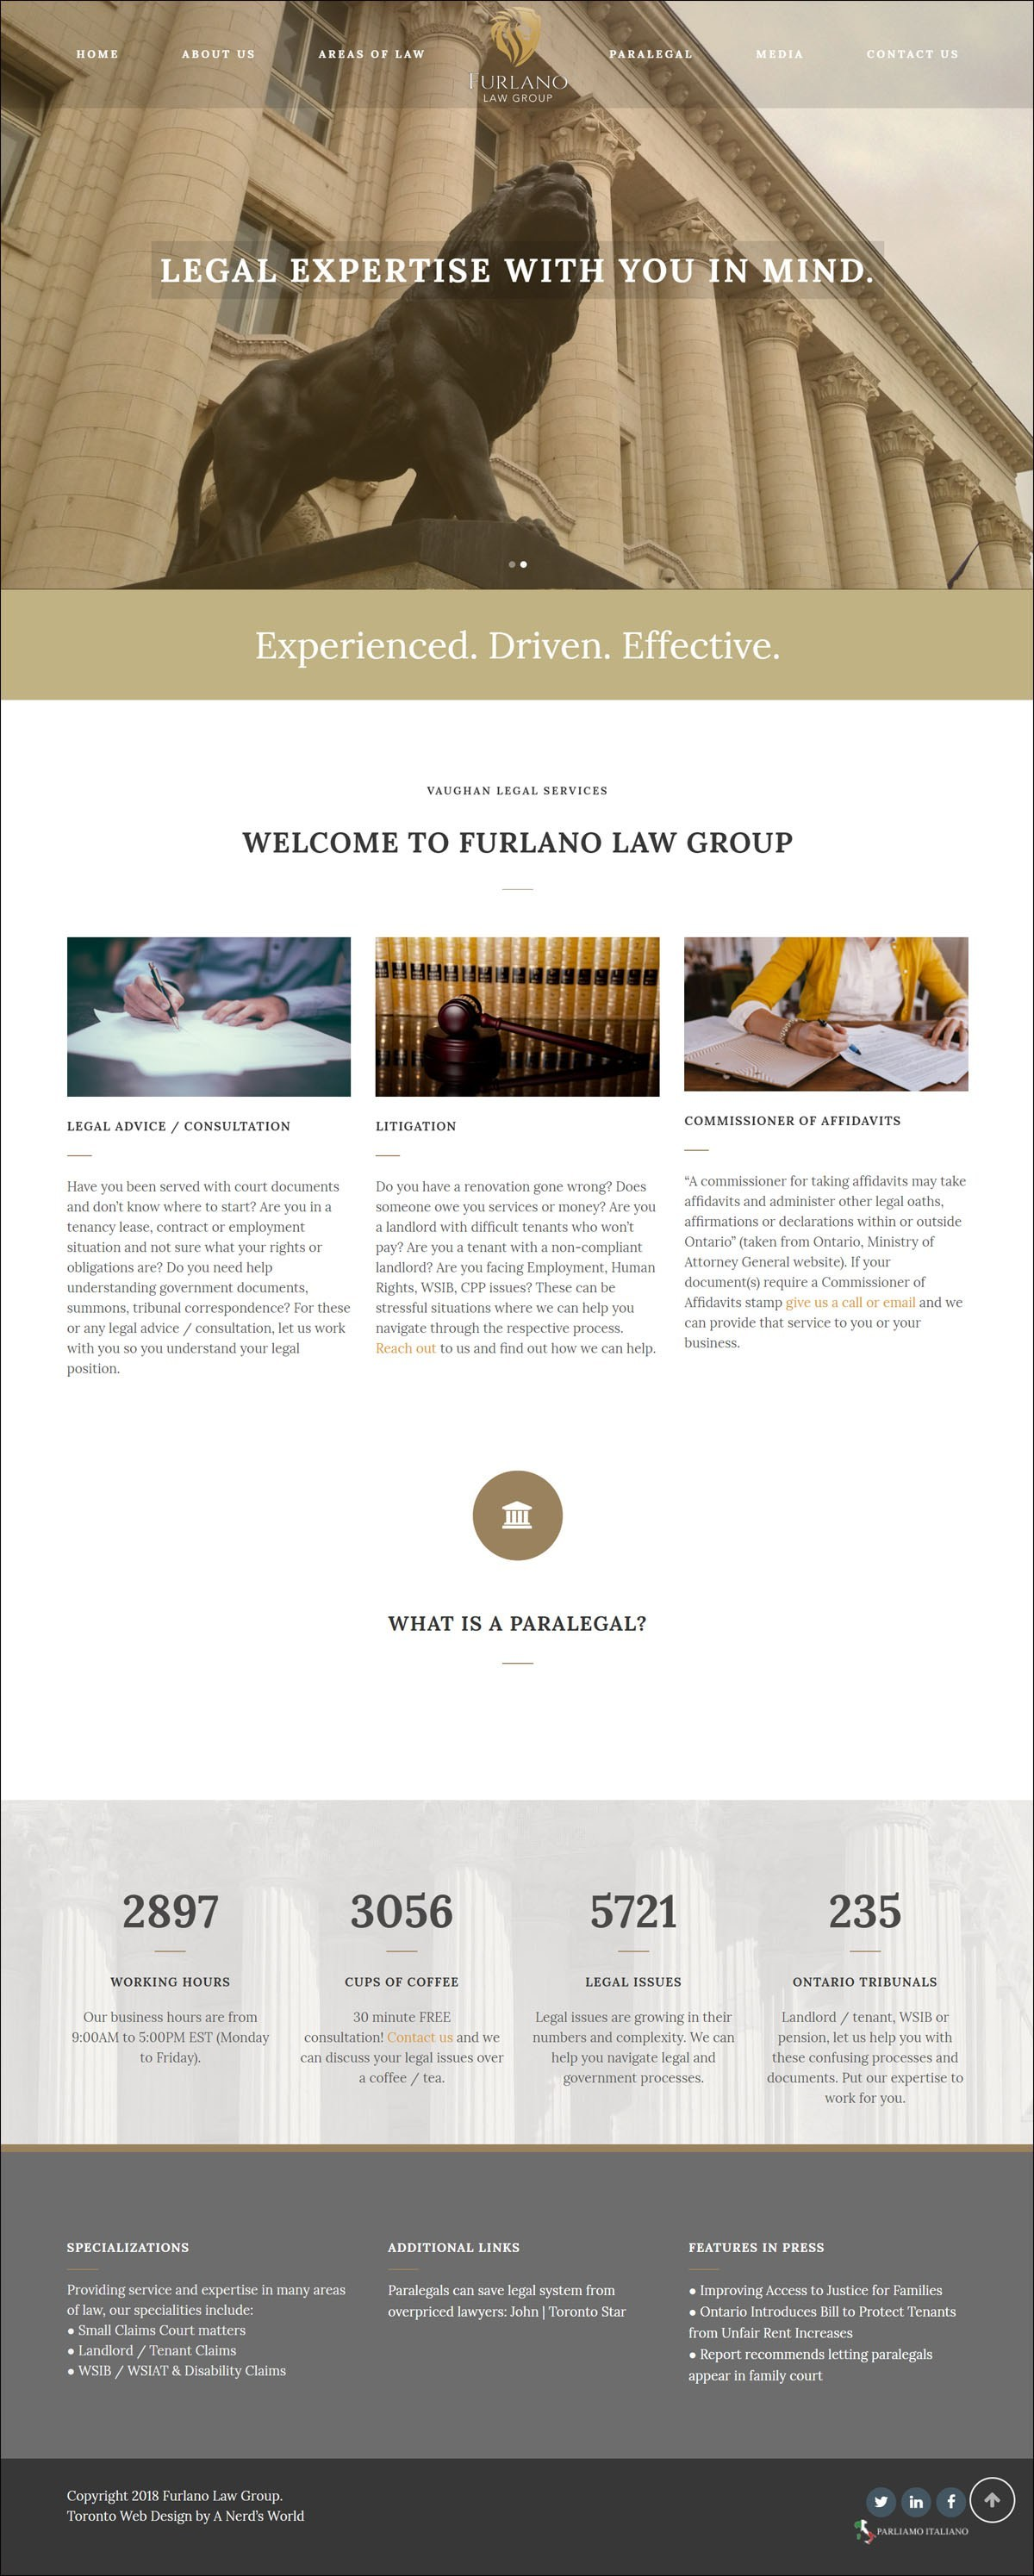 Furlano Law Group Web Development by The Creative Ninja